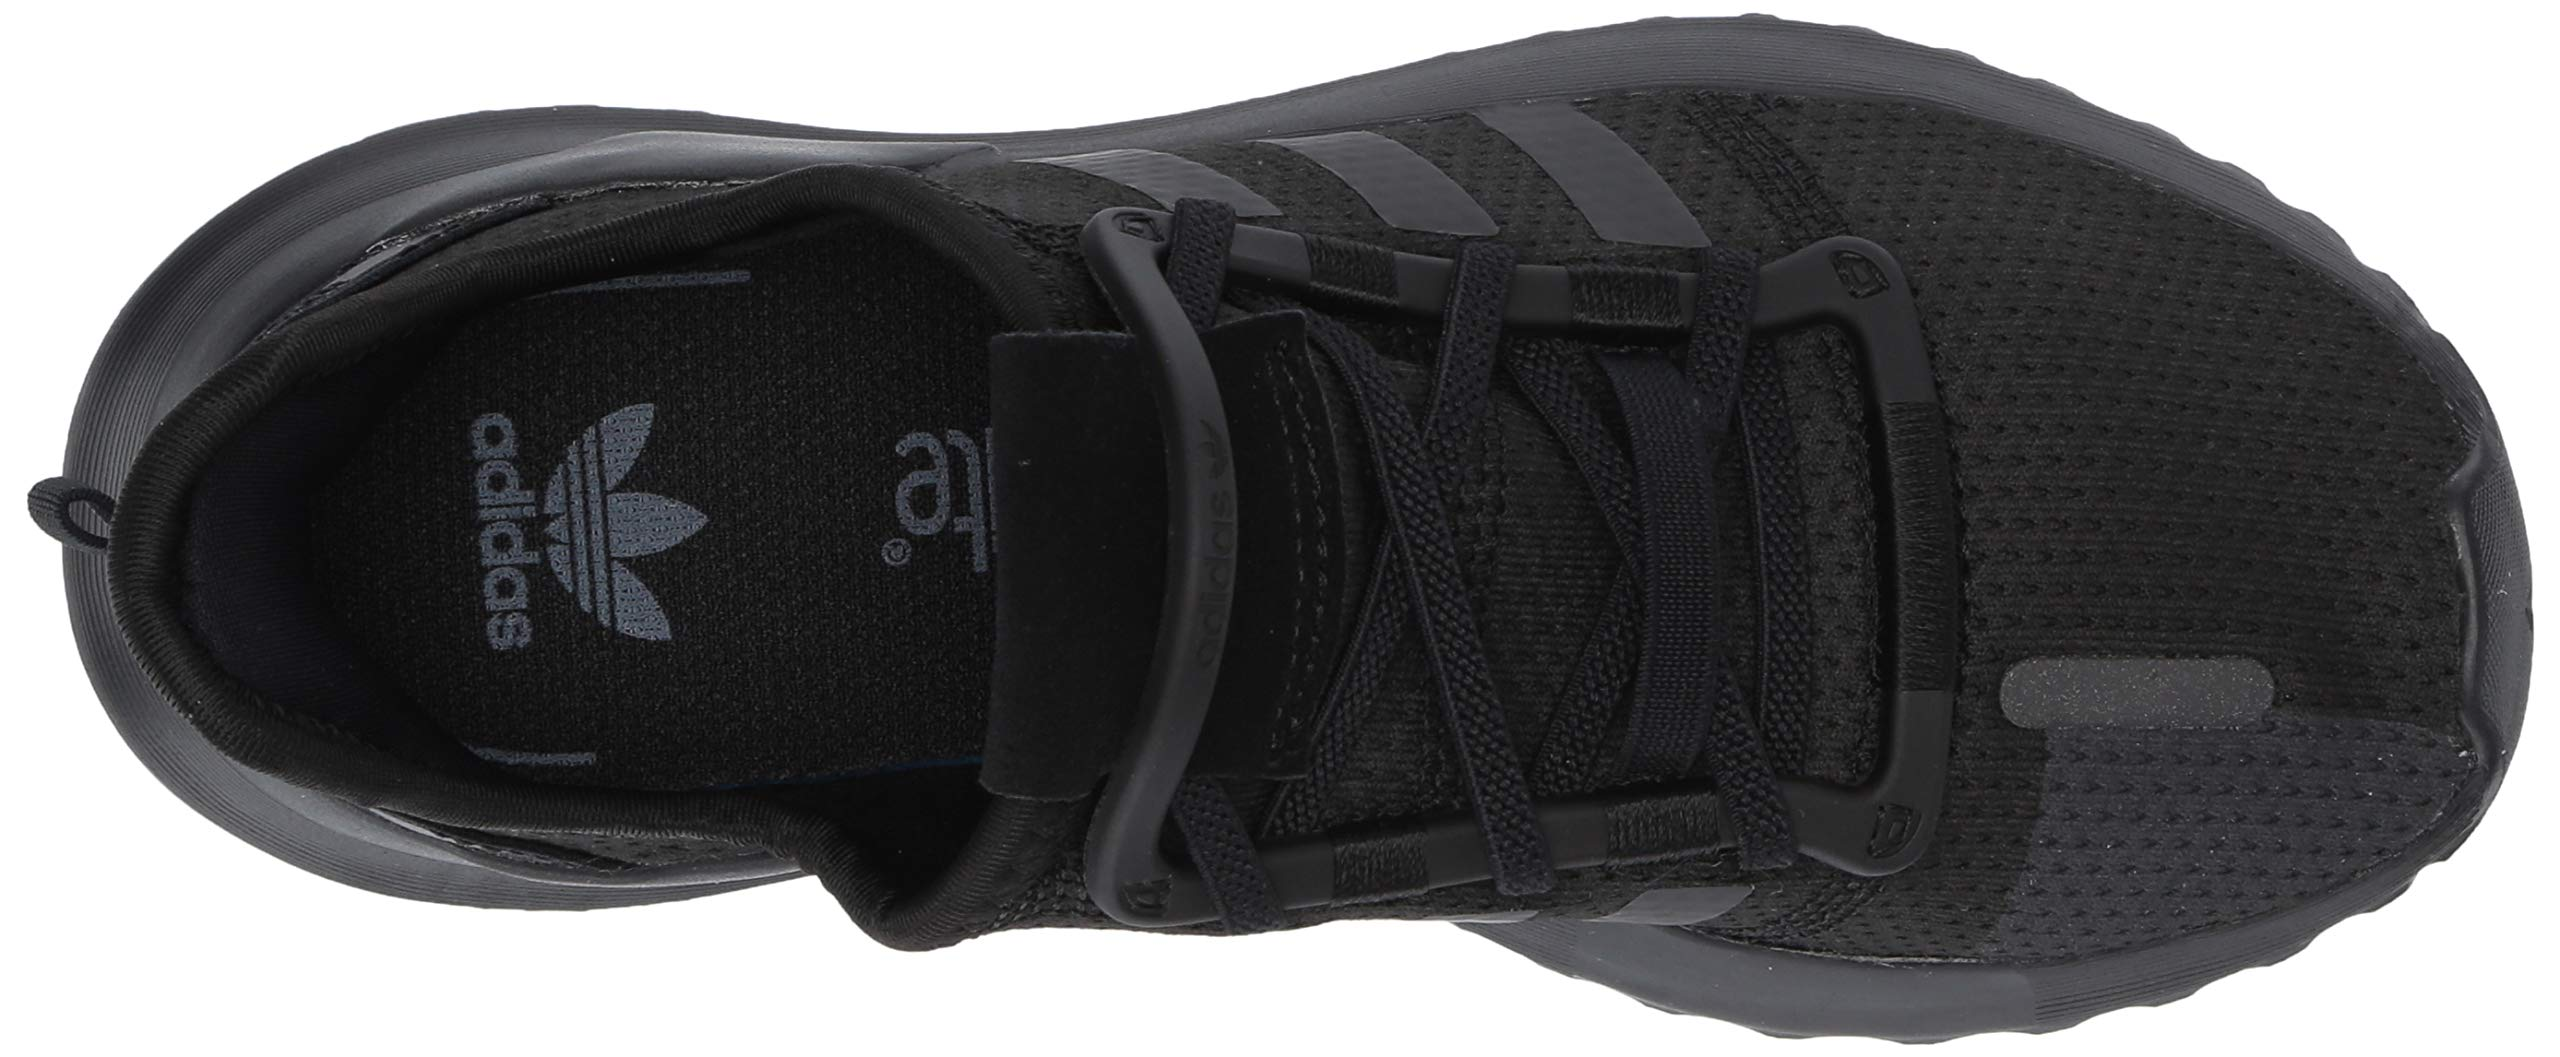 adidas Originals Baby U_Path Running Shoe Black/White, 6K M US Toddler by adidas Originals (Image #7)